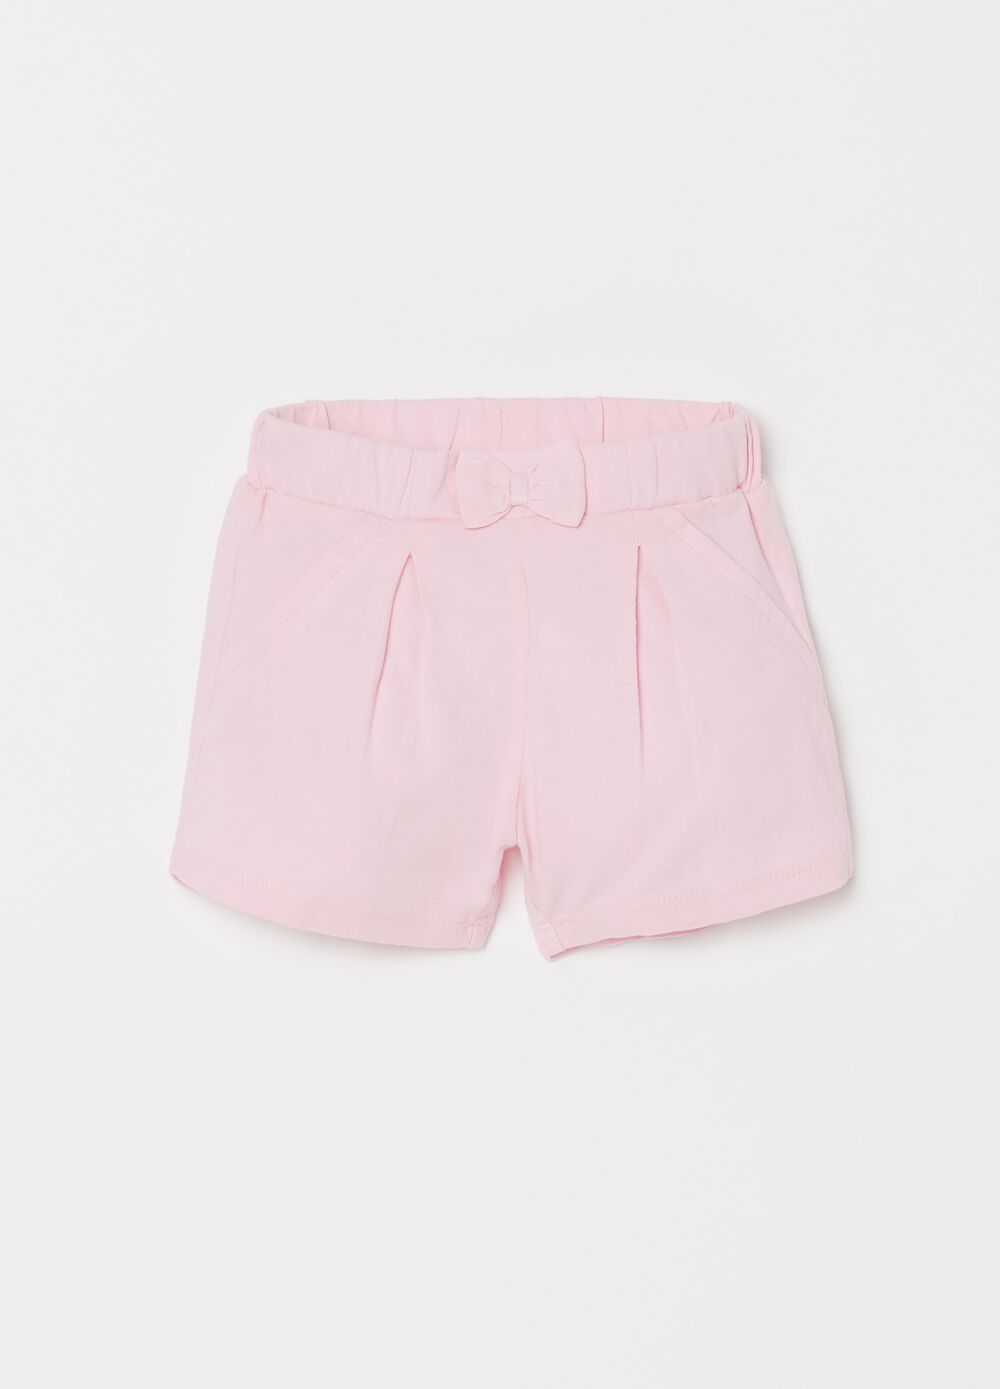 100% cotton shorts with bow and pocket